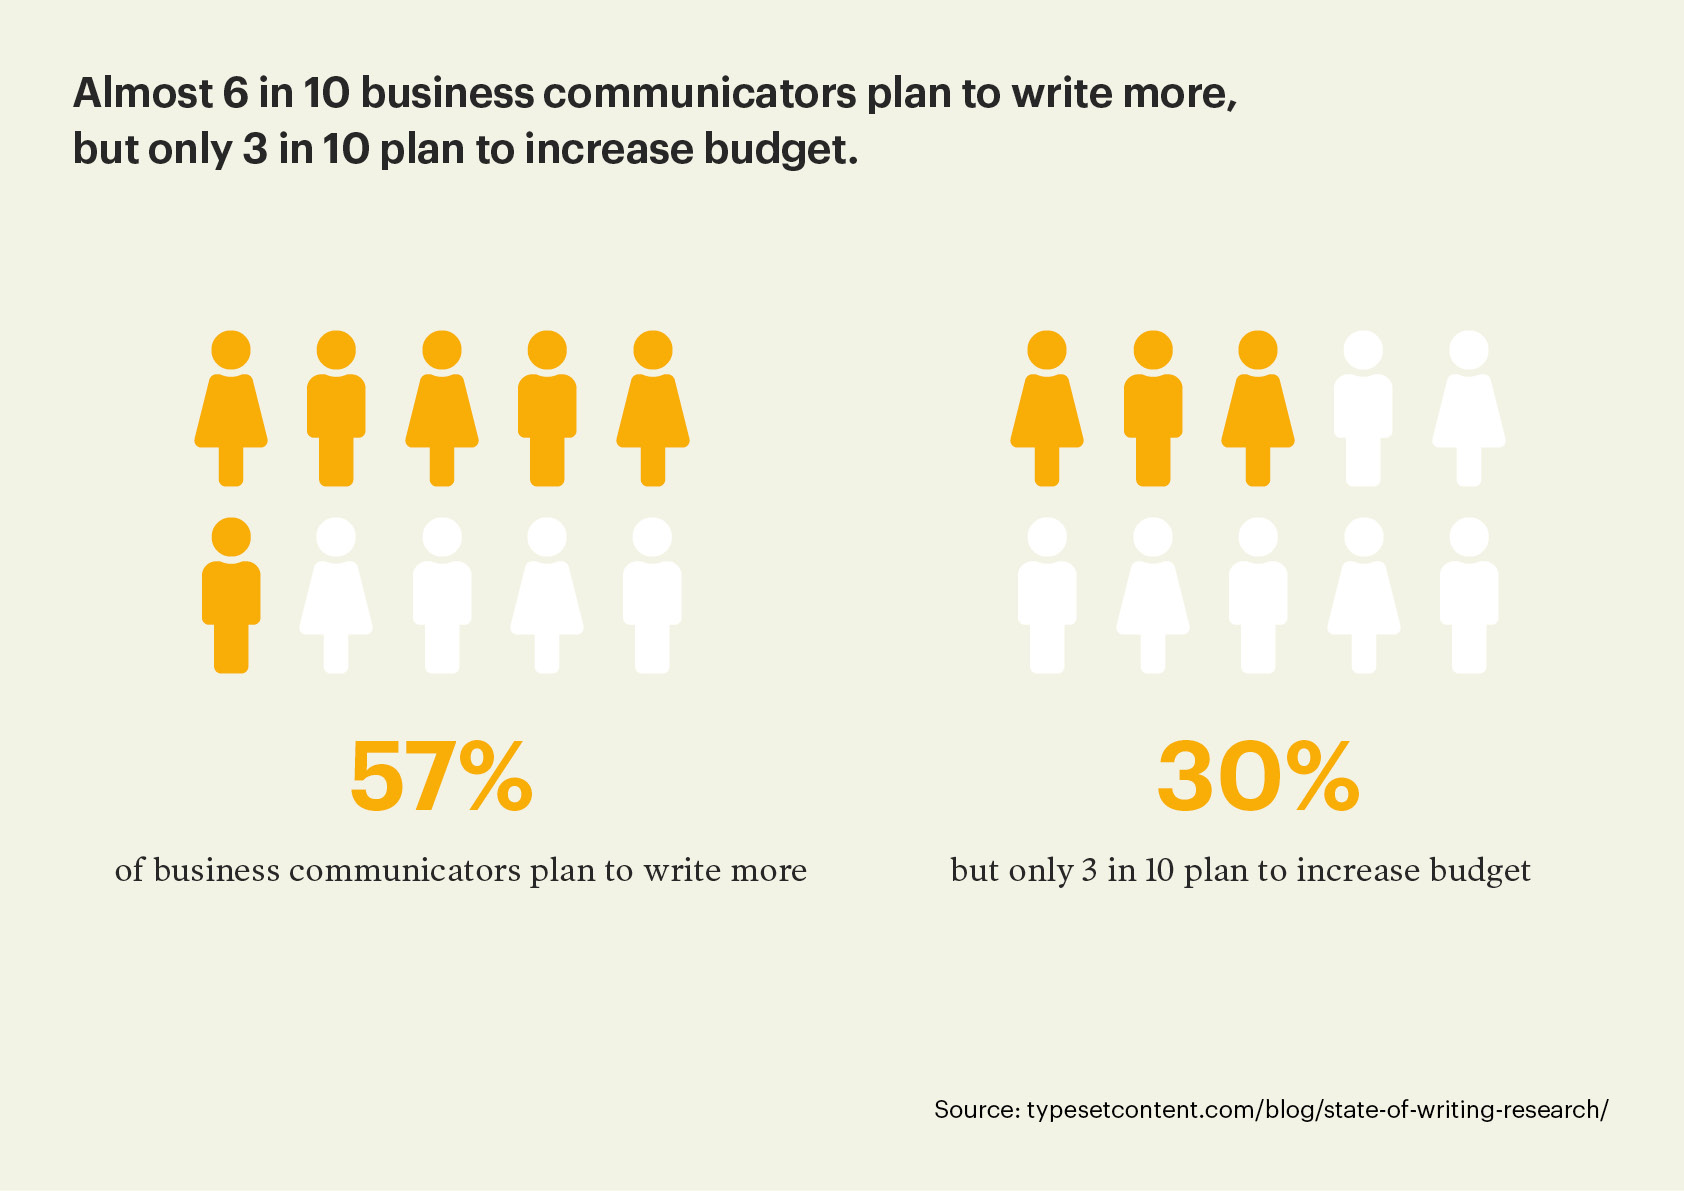 Graphic showing 6 in 10 business communicators will write more but only 3 in 10 plan to increase budget.